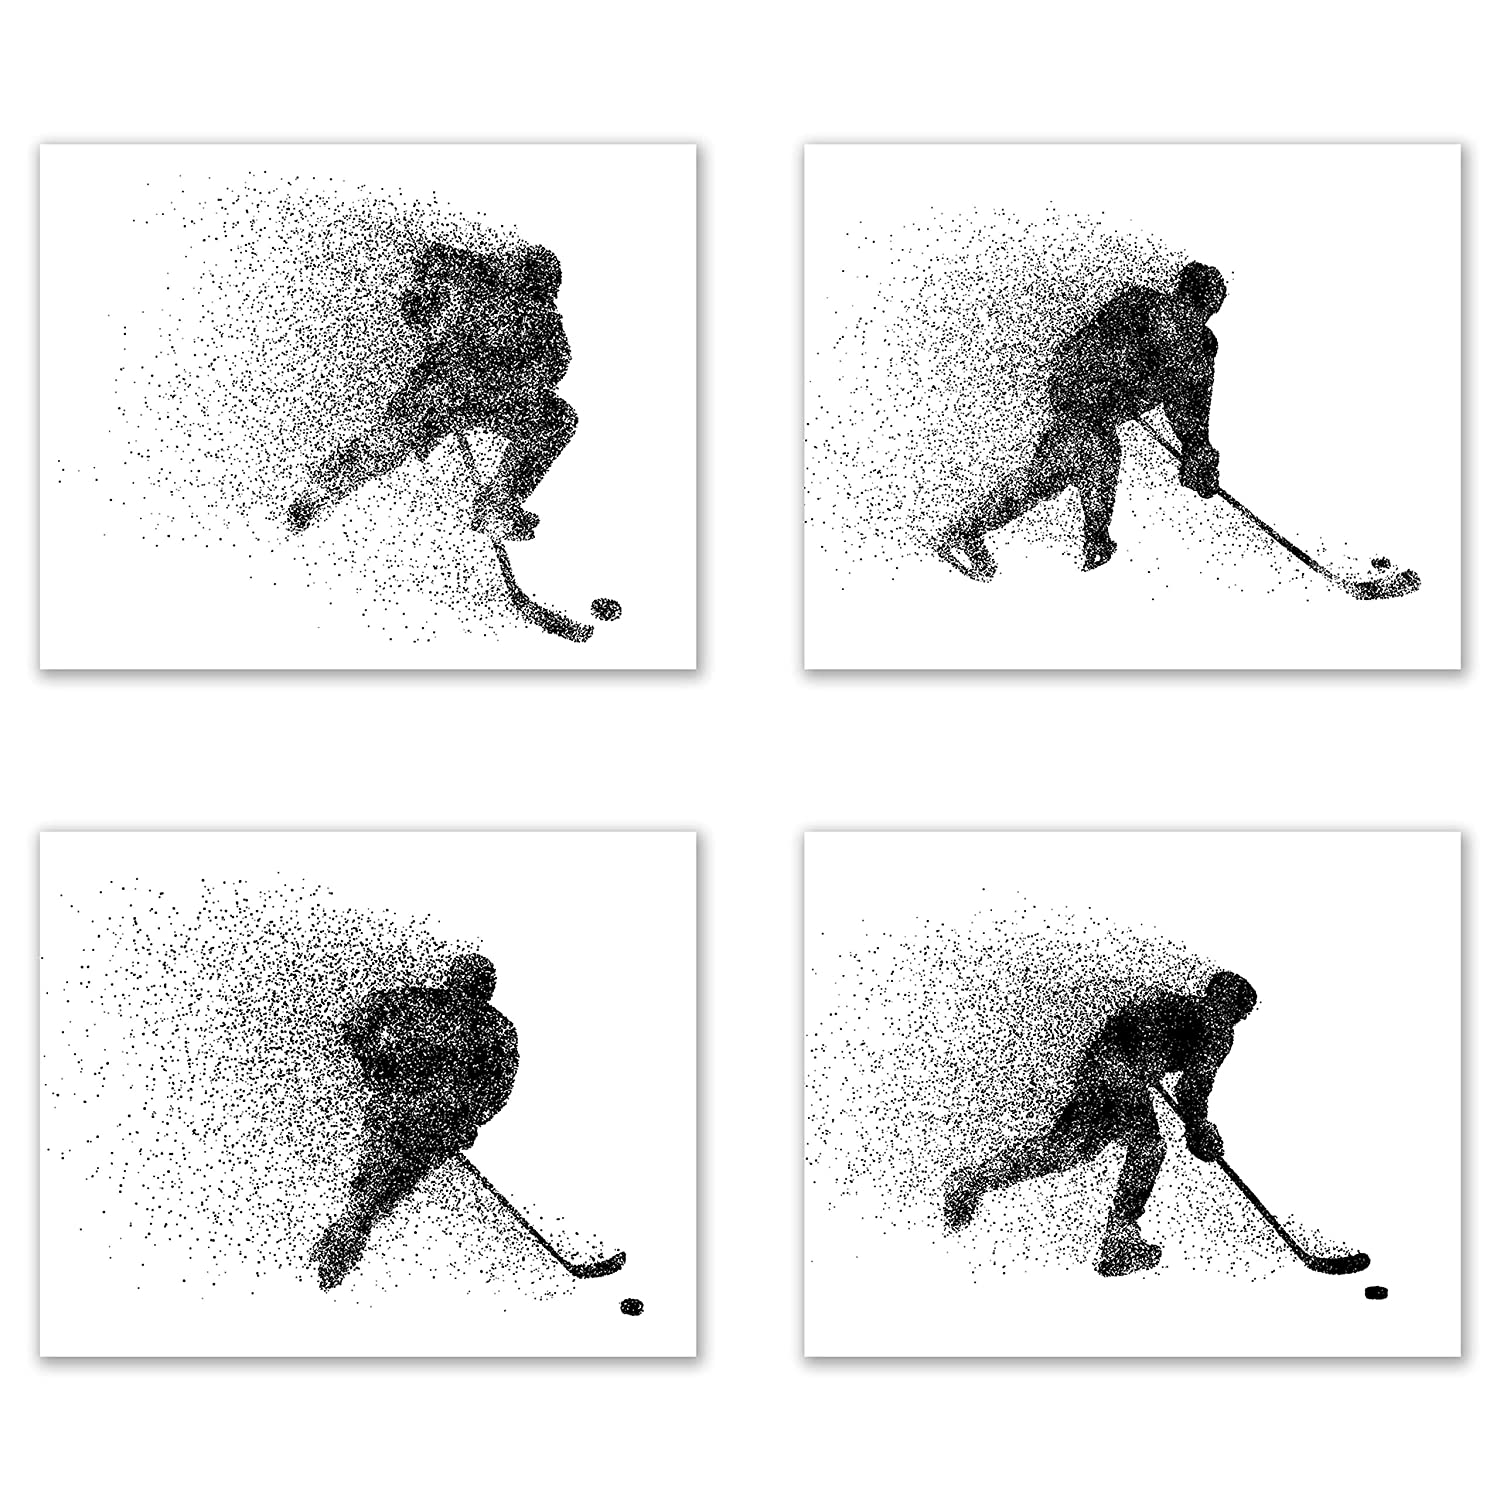 Ice Hockey Wall Art Prints - Particle Silhouette - Set of 4 (8x10) Poster Photos - Bedroom - Man Cave Decor